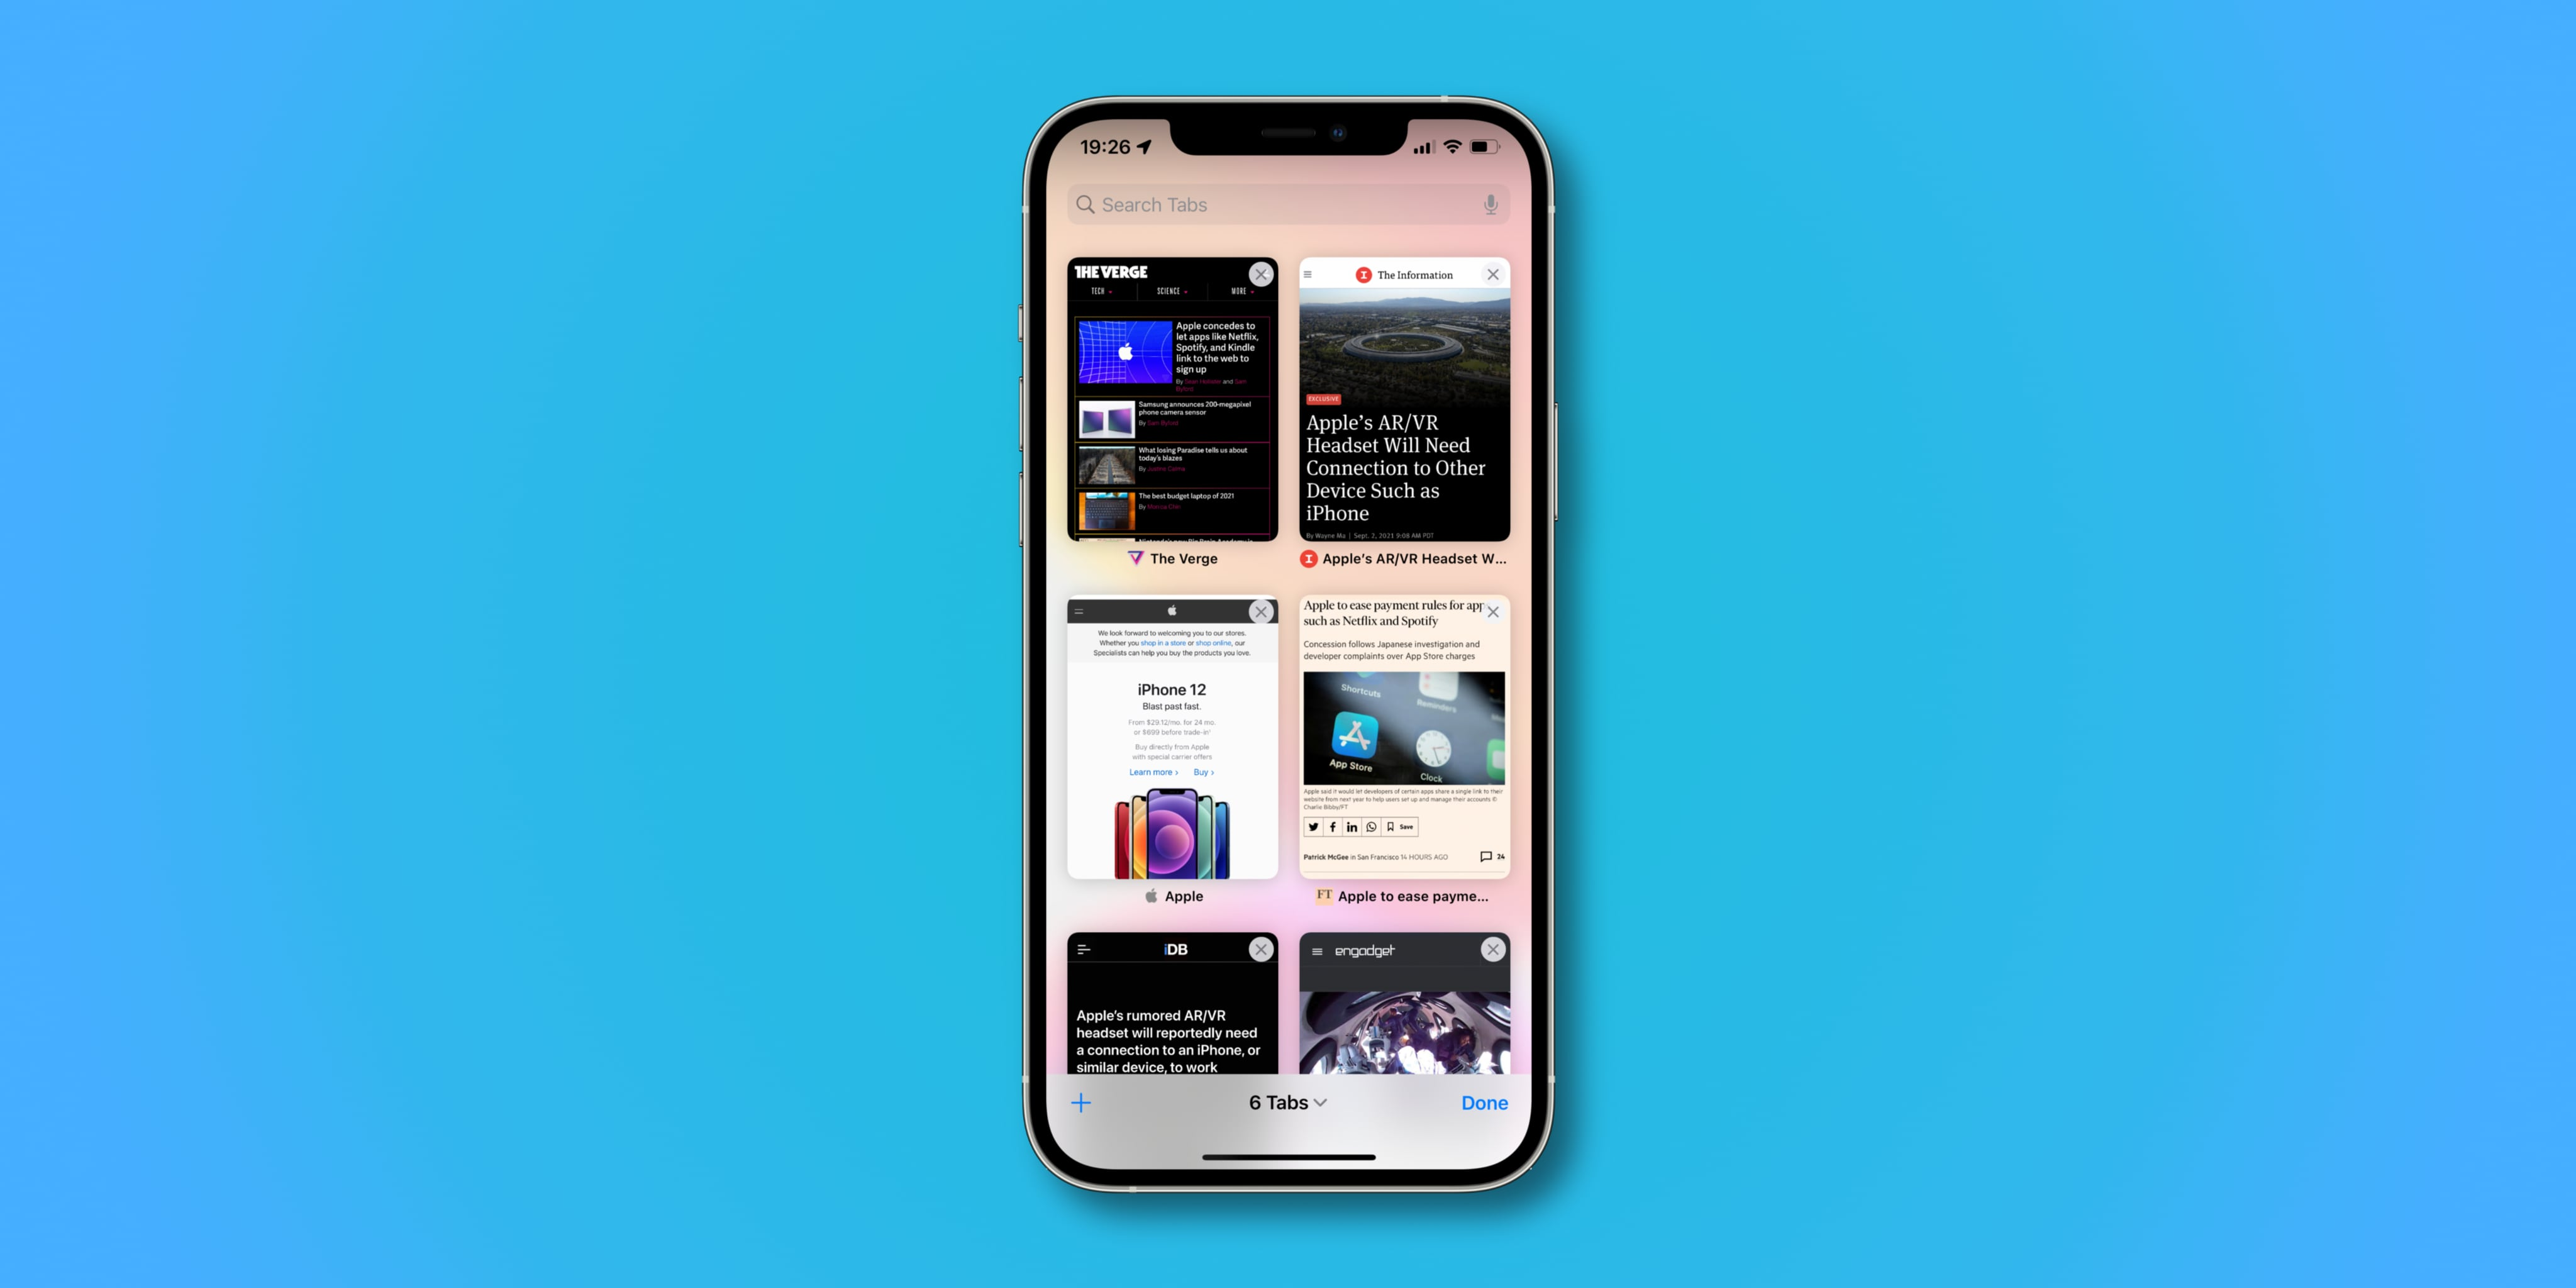 iPhone screenshot illustrating website thumbnails in the All Tabs view in Safari on iOS 15